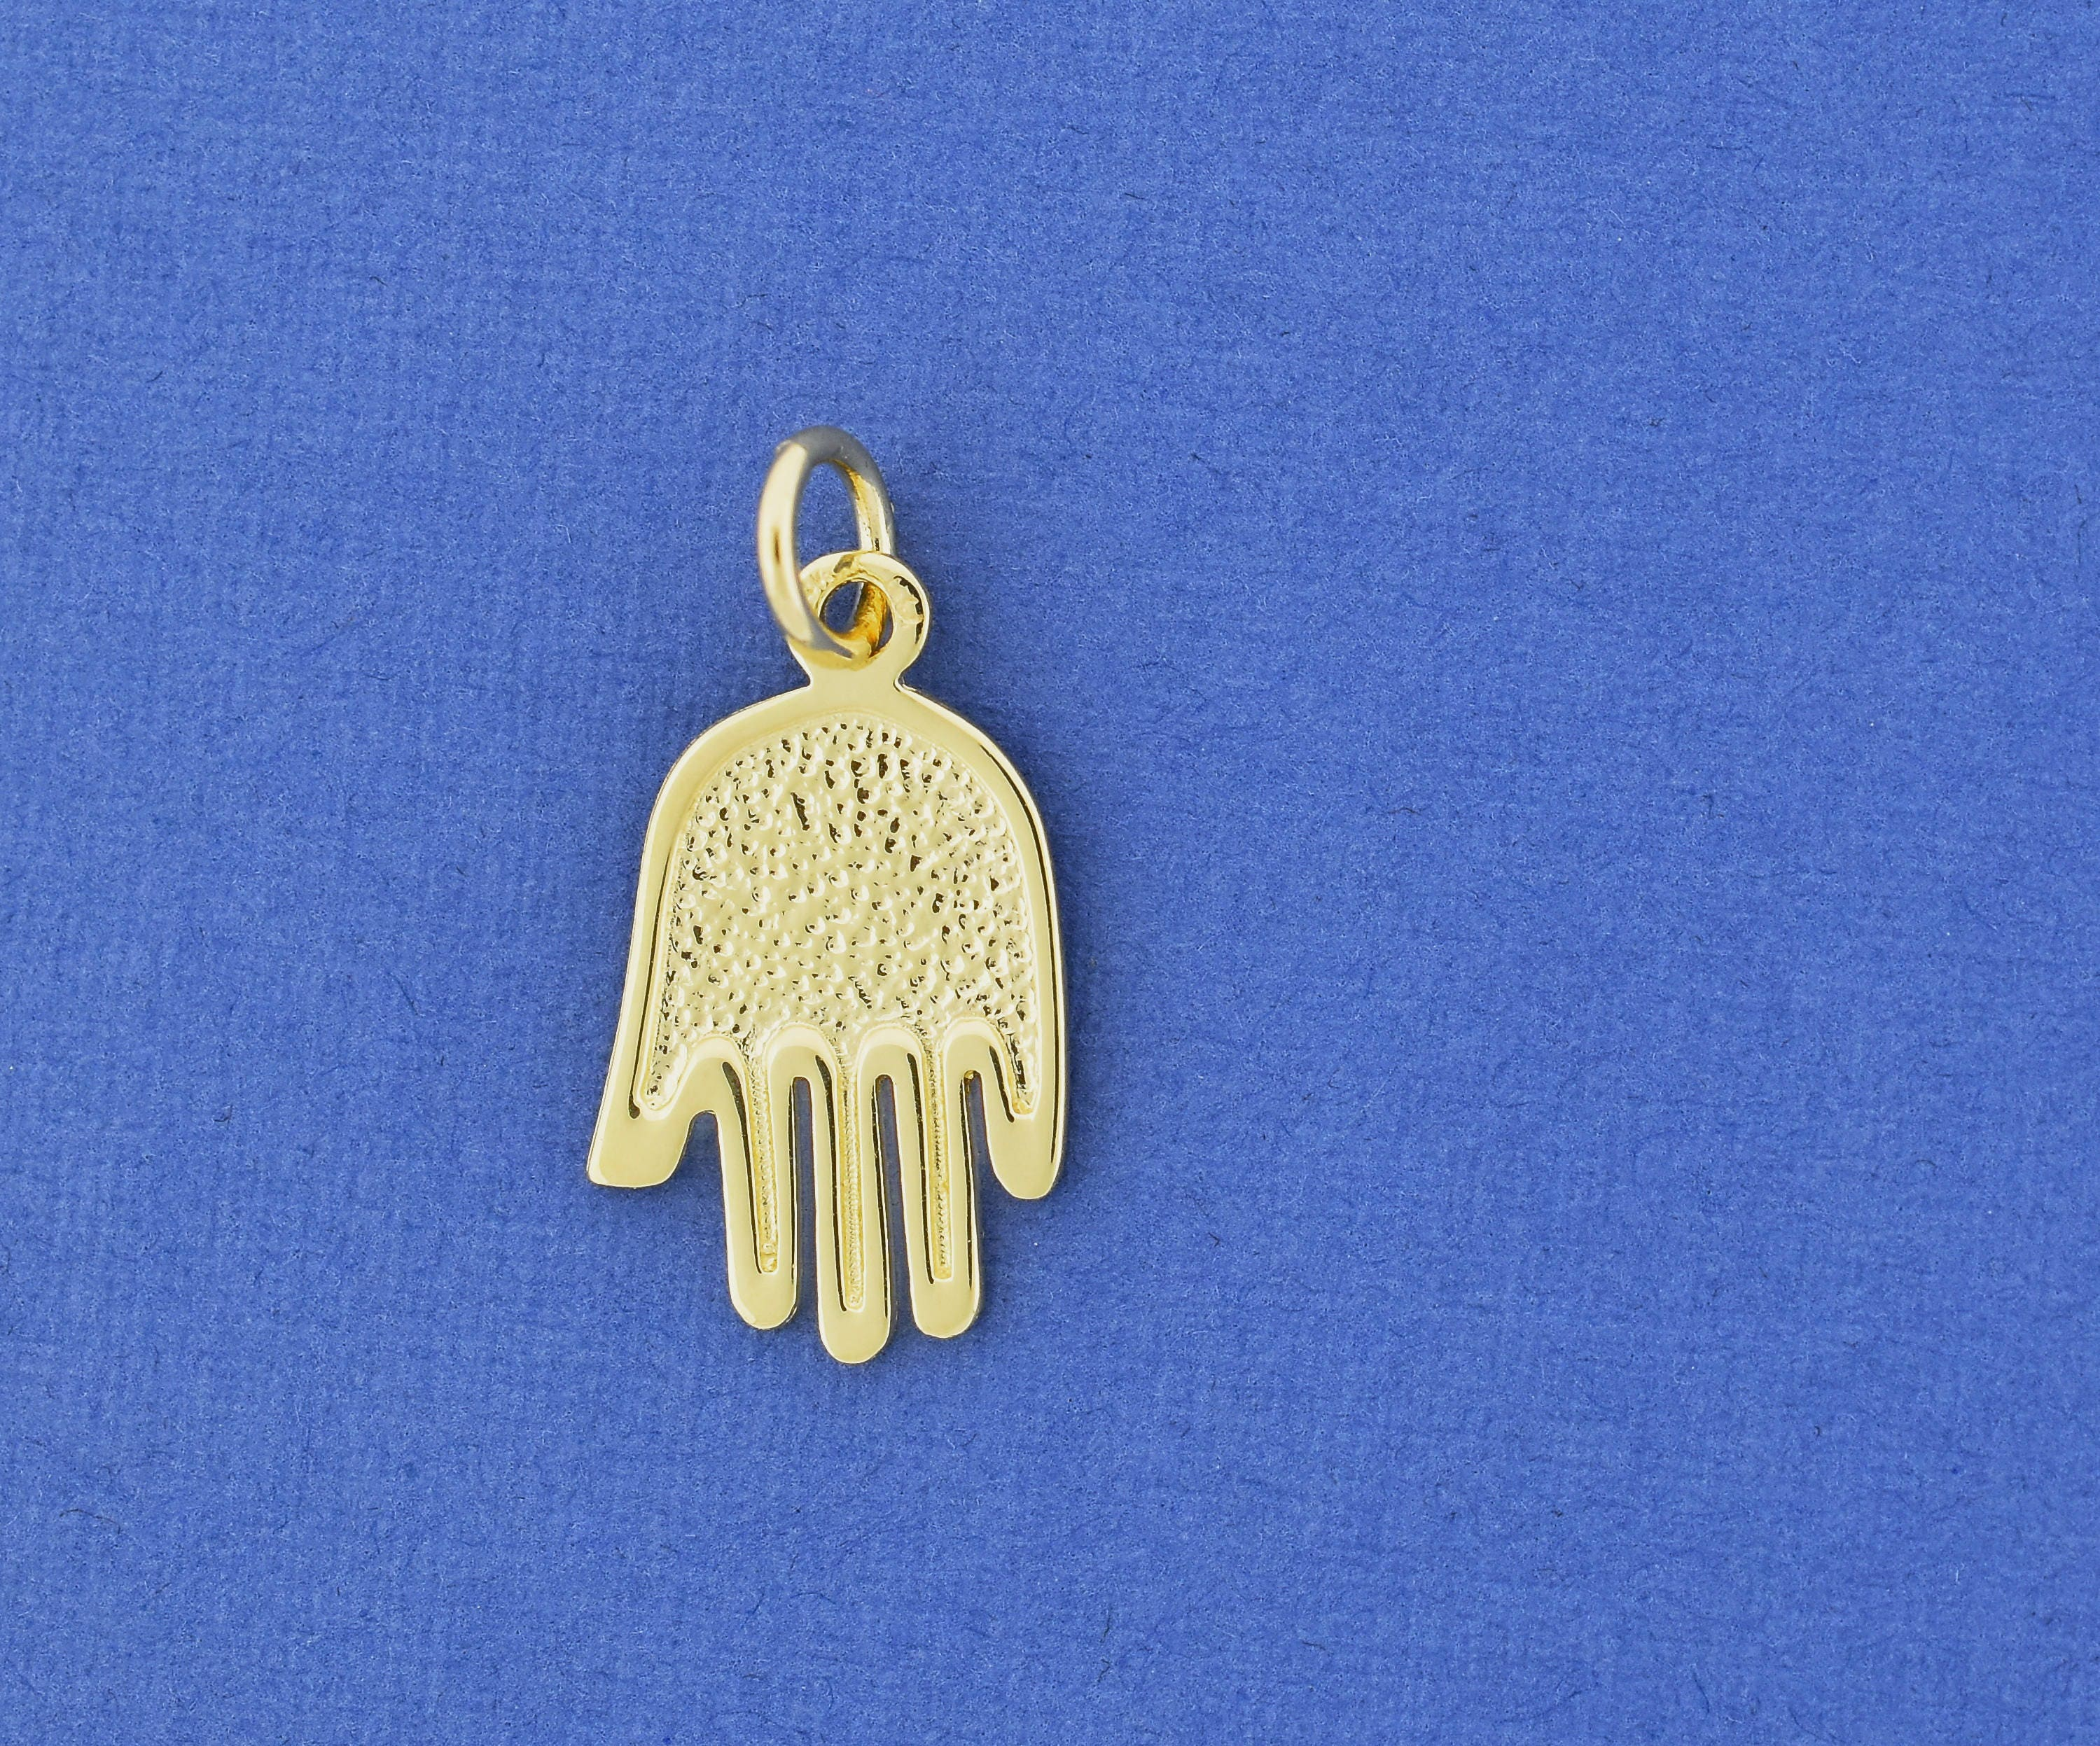 14k Solid Yellow Gold Textured Filigree Hamsa Hand of Fatima Pendant